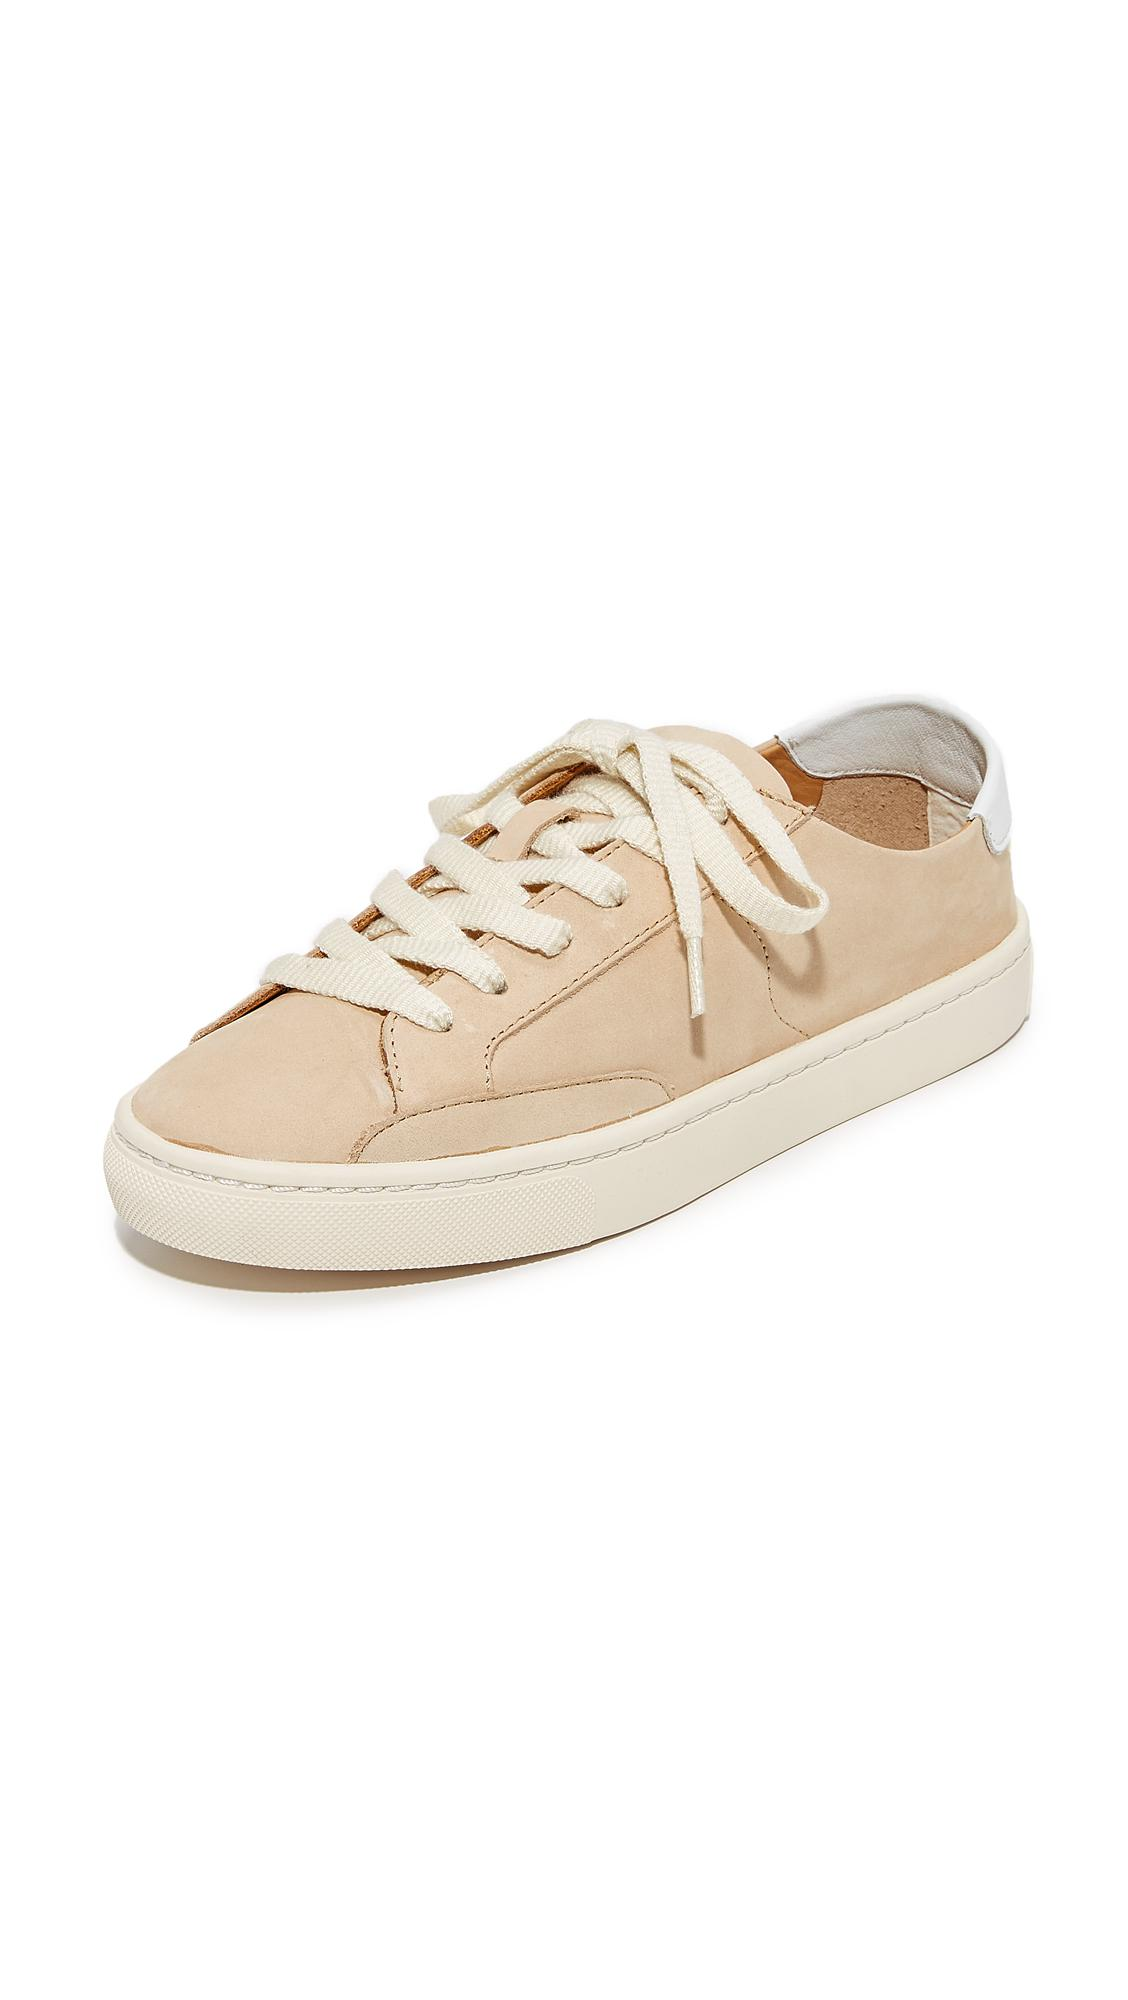 Ibiza Classic Lace Up Sneakers Soludos U5nthi